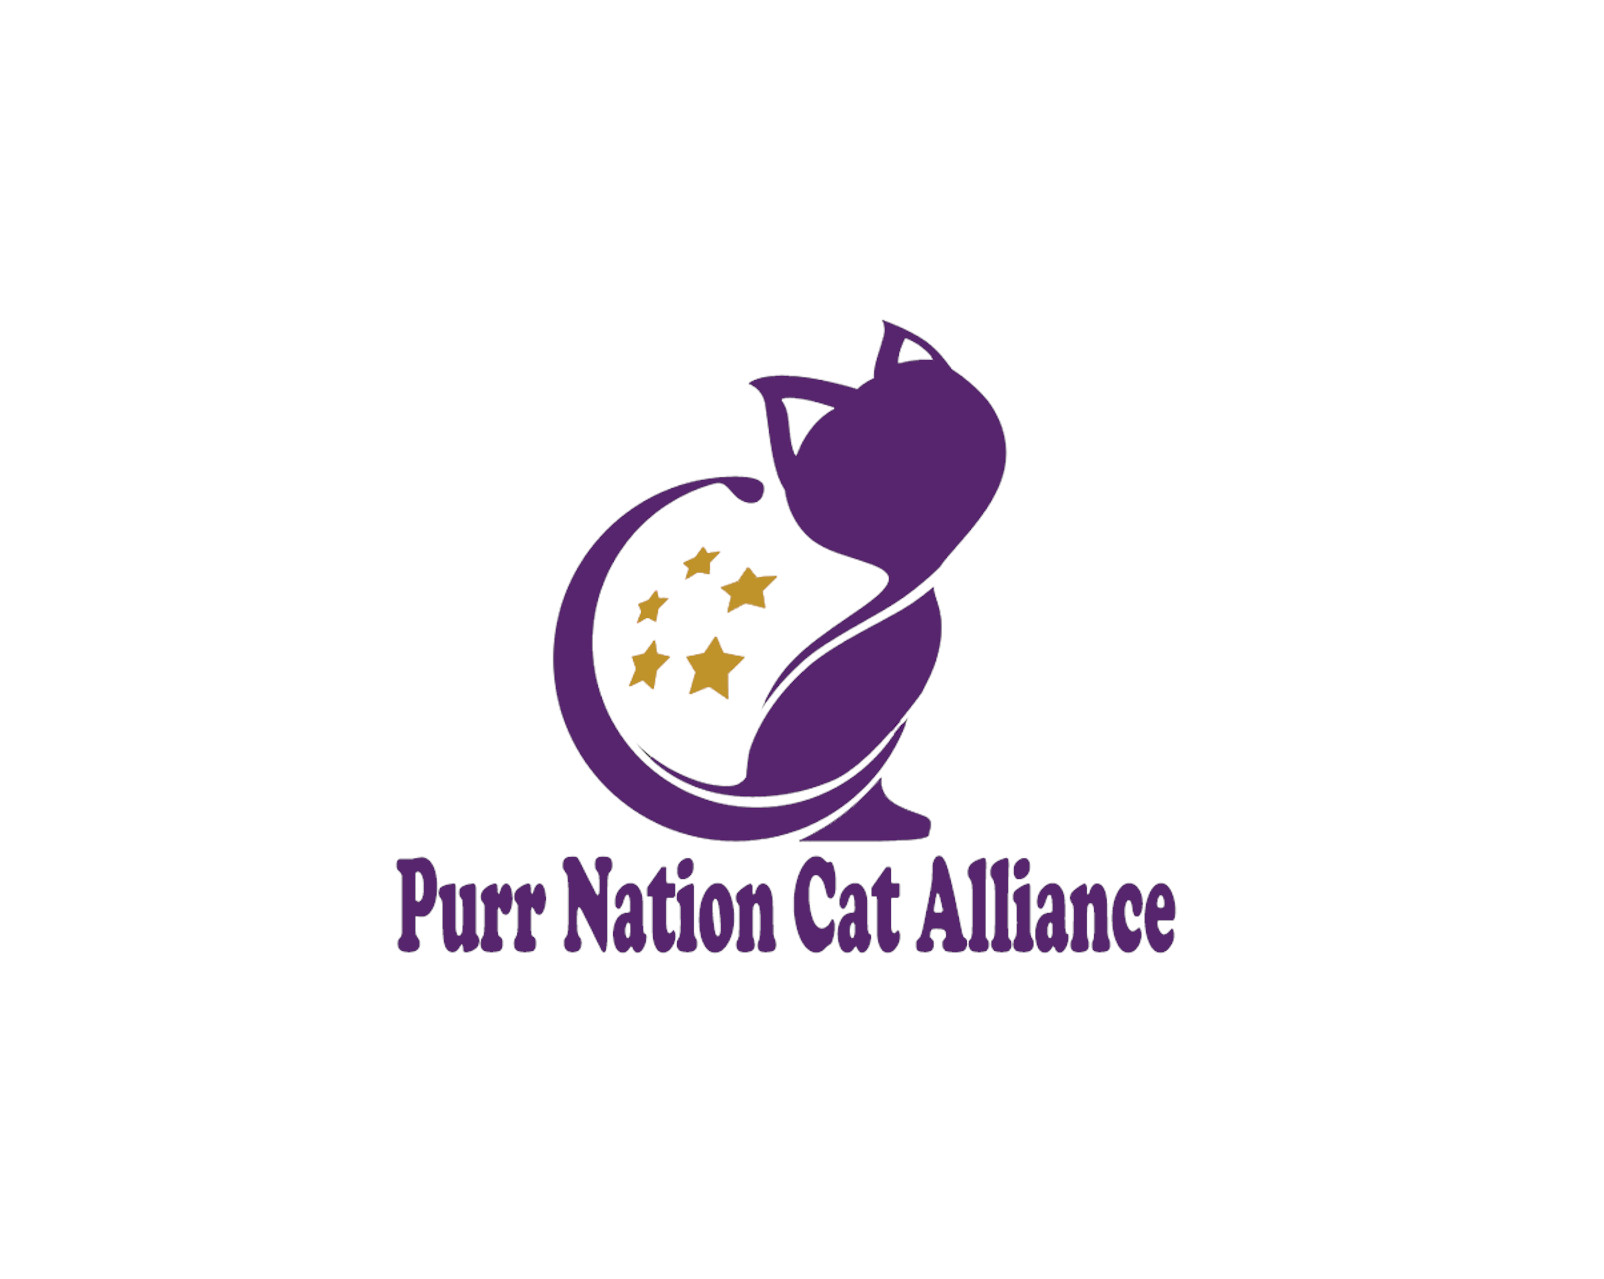 Purr Nation